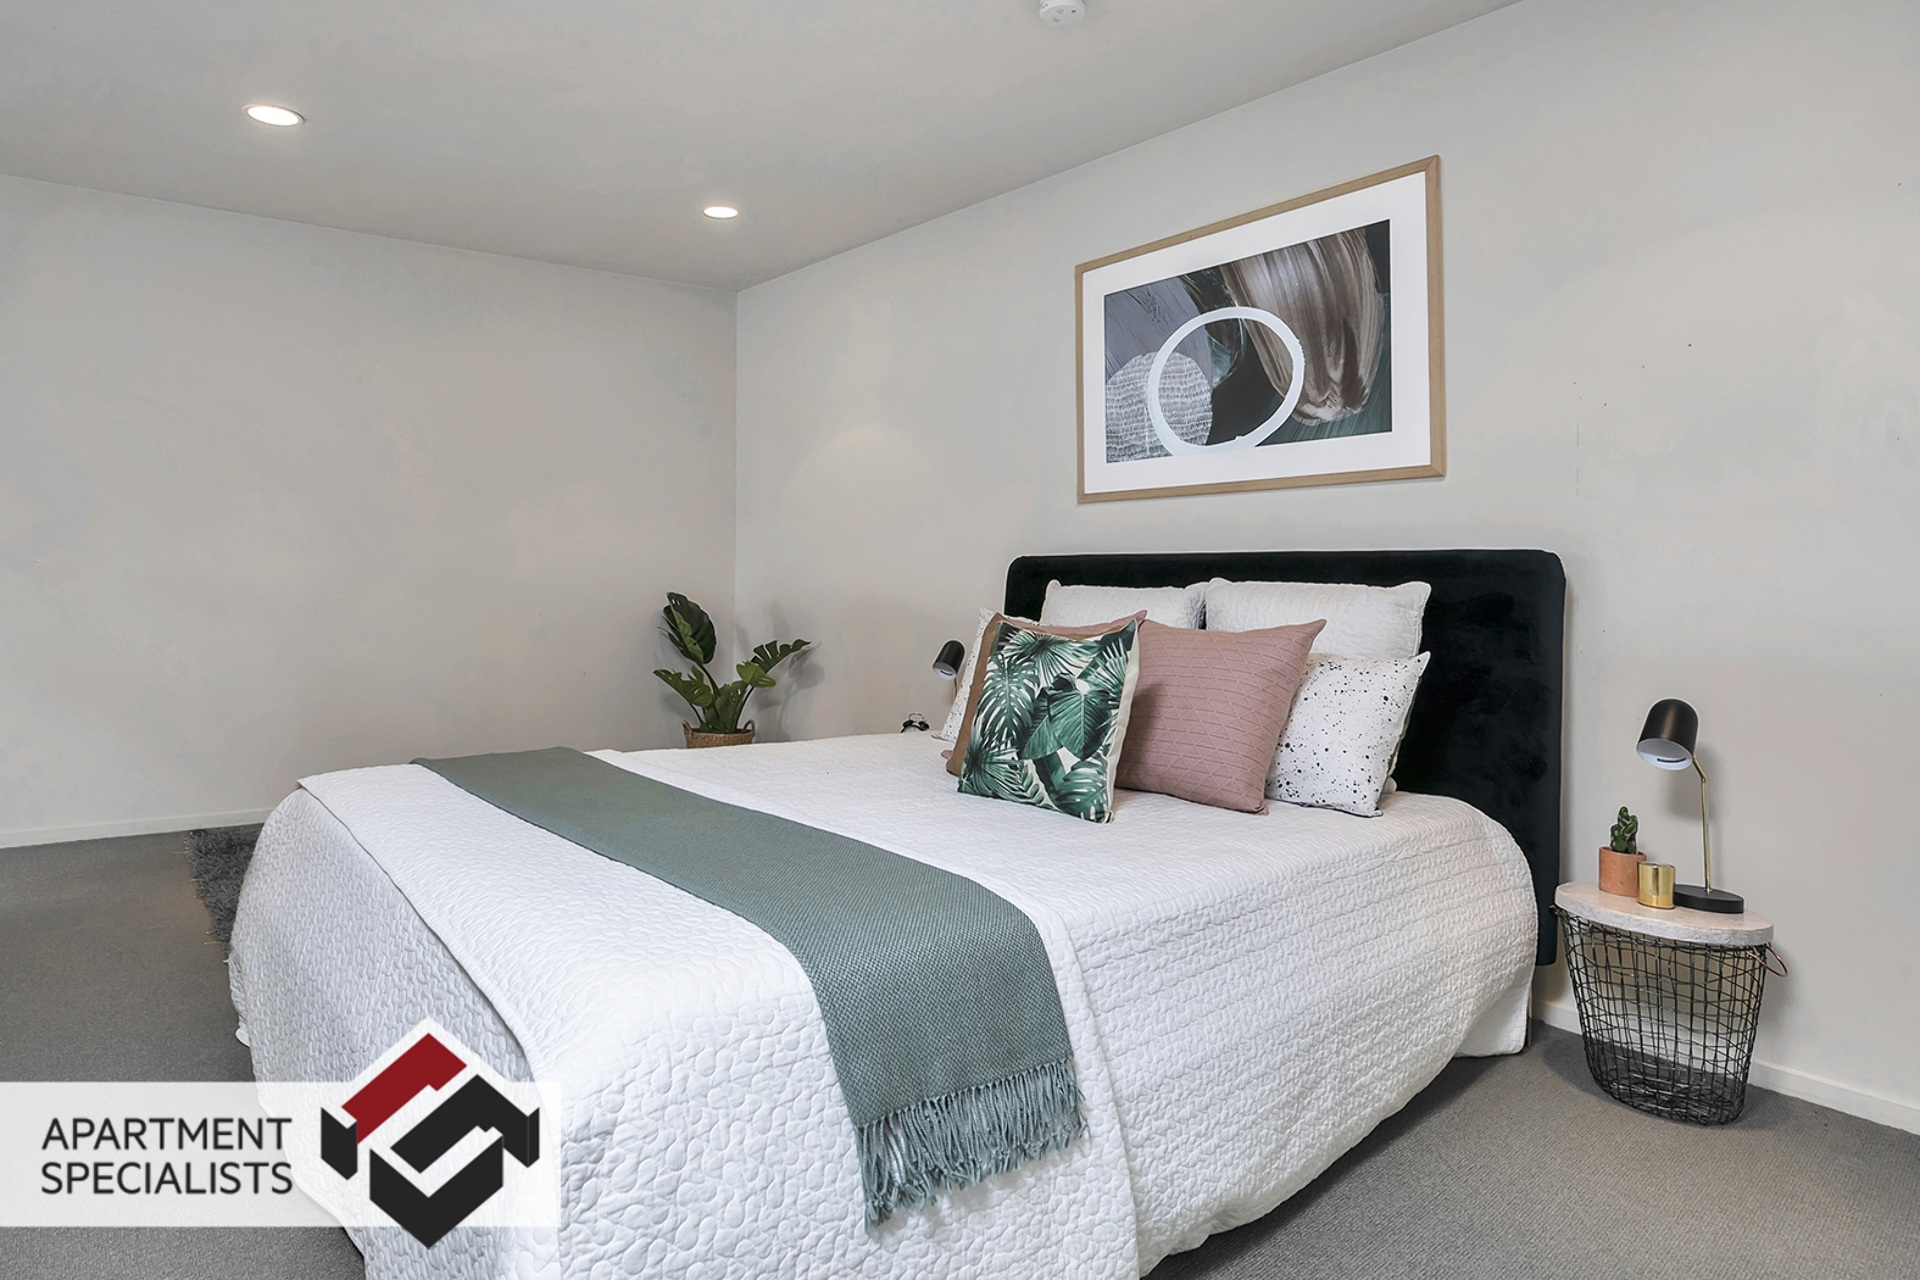 4 | 5 Charlotte Street, Eden Terrace | Apartment Specialists